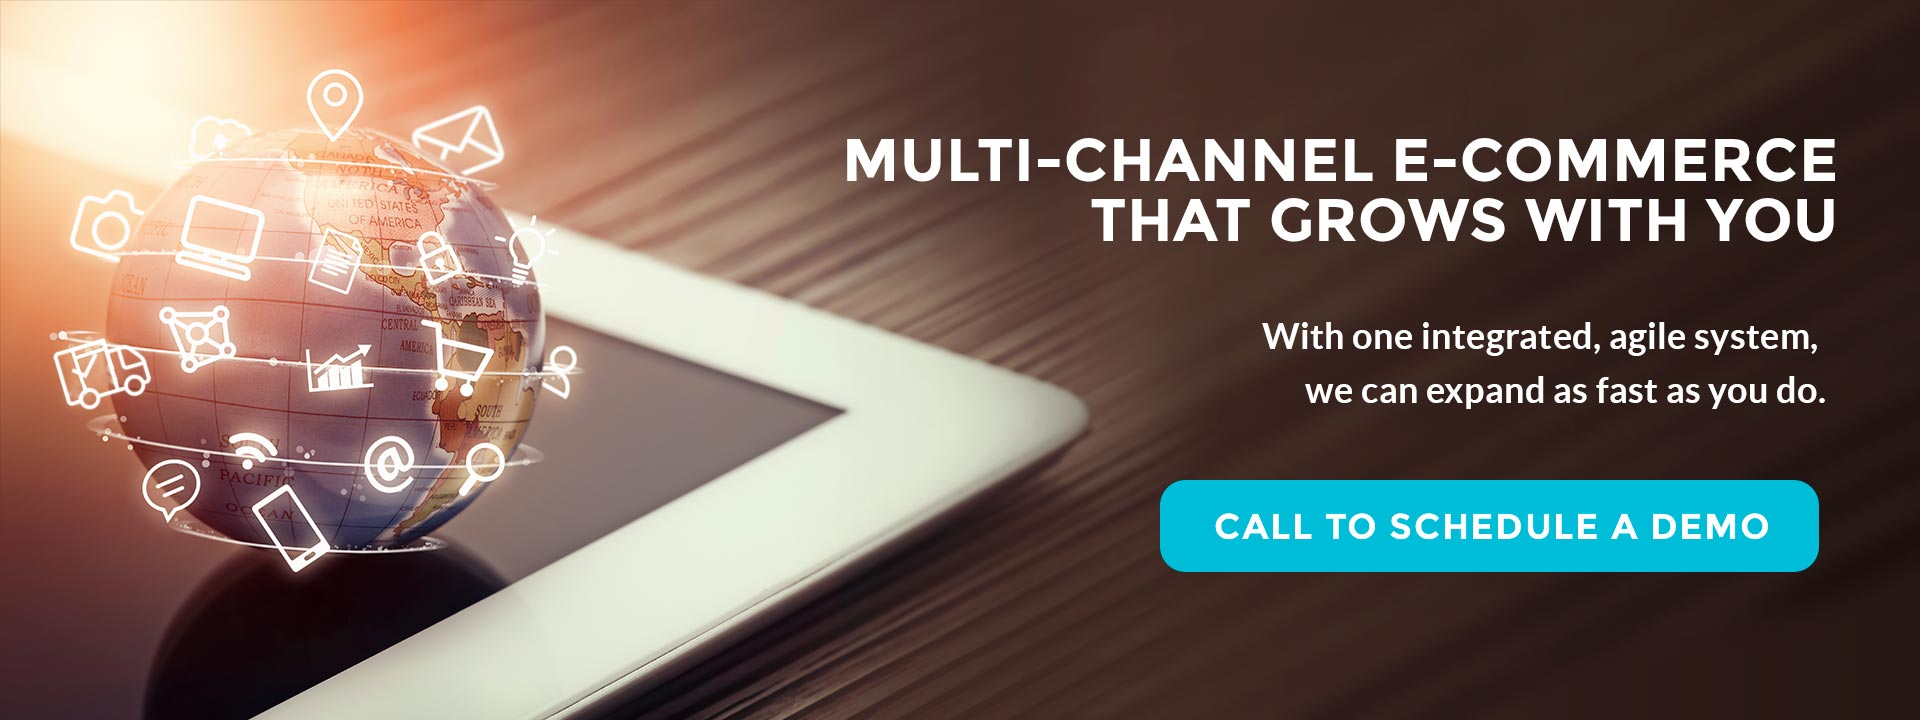 Multi-Channel Ecommerce which grows with you